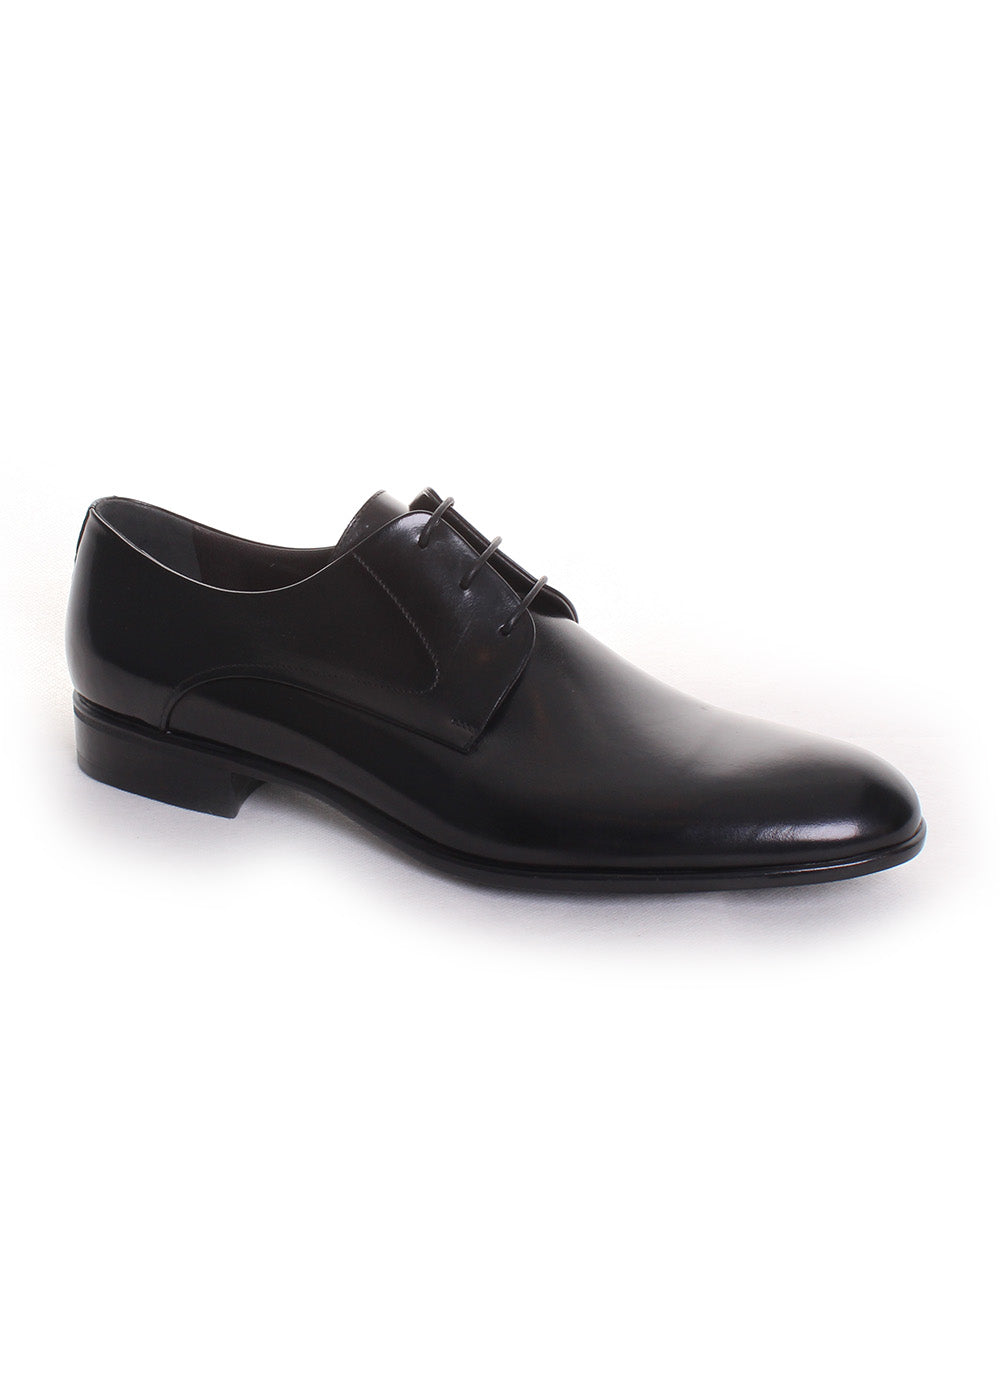 Moreschi 'Liverpool' Derby Shoe in Black